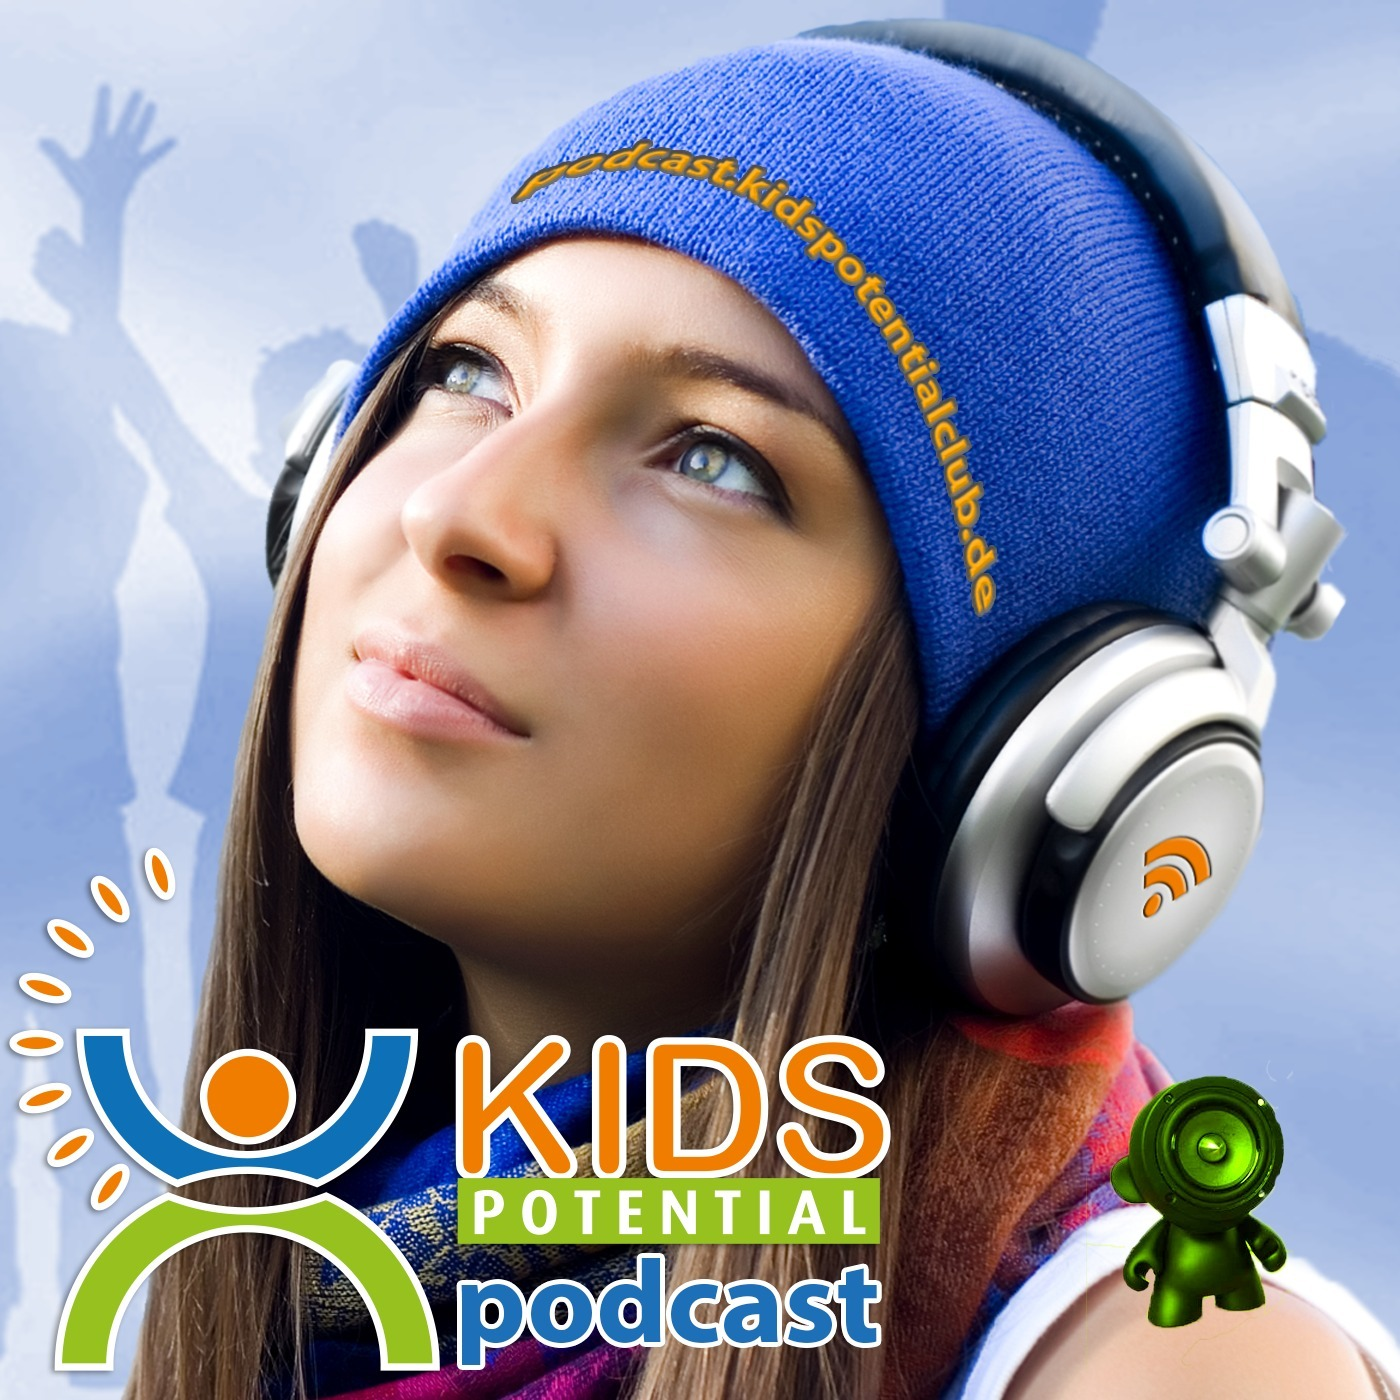 Kids' Potential Podcast